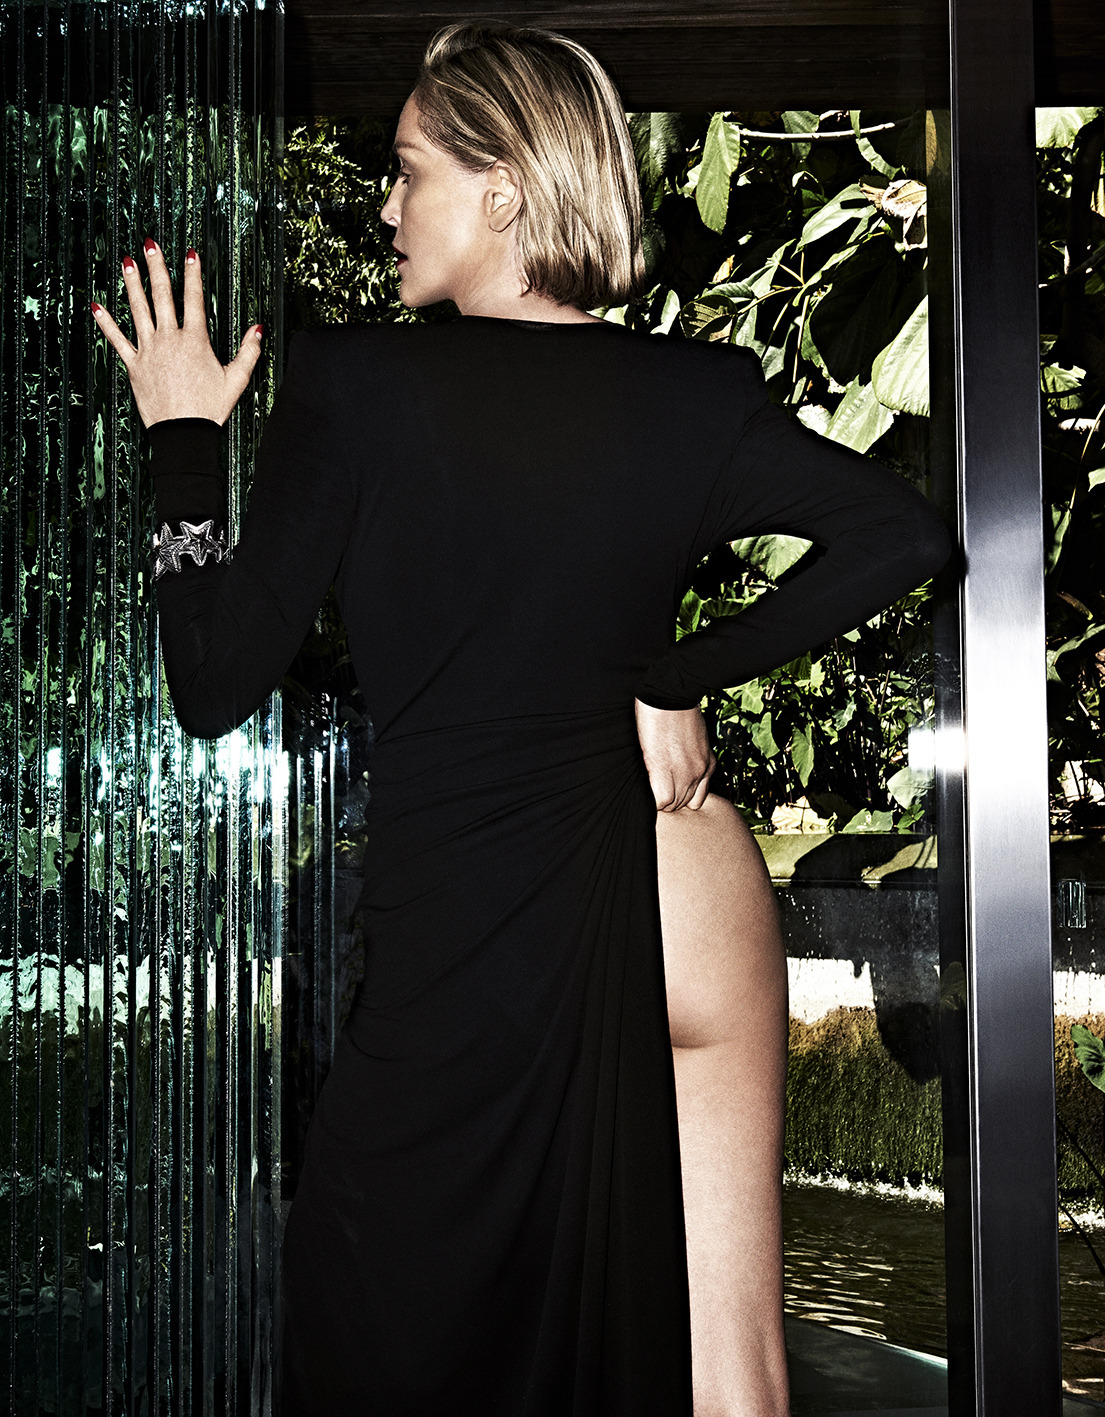 Sharon Stone Delivers Epic Sensuality, Age 61, Inspiring Women To Celebrate Sexuality